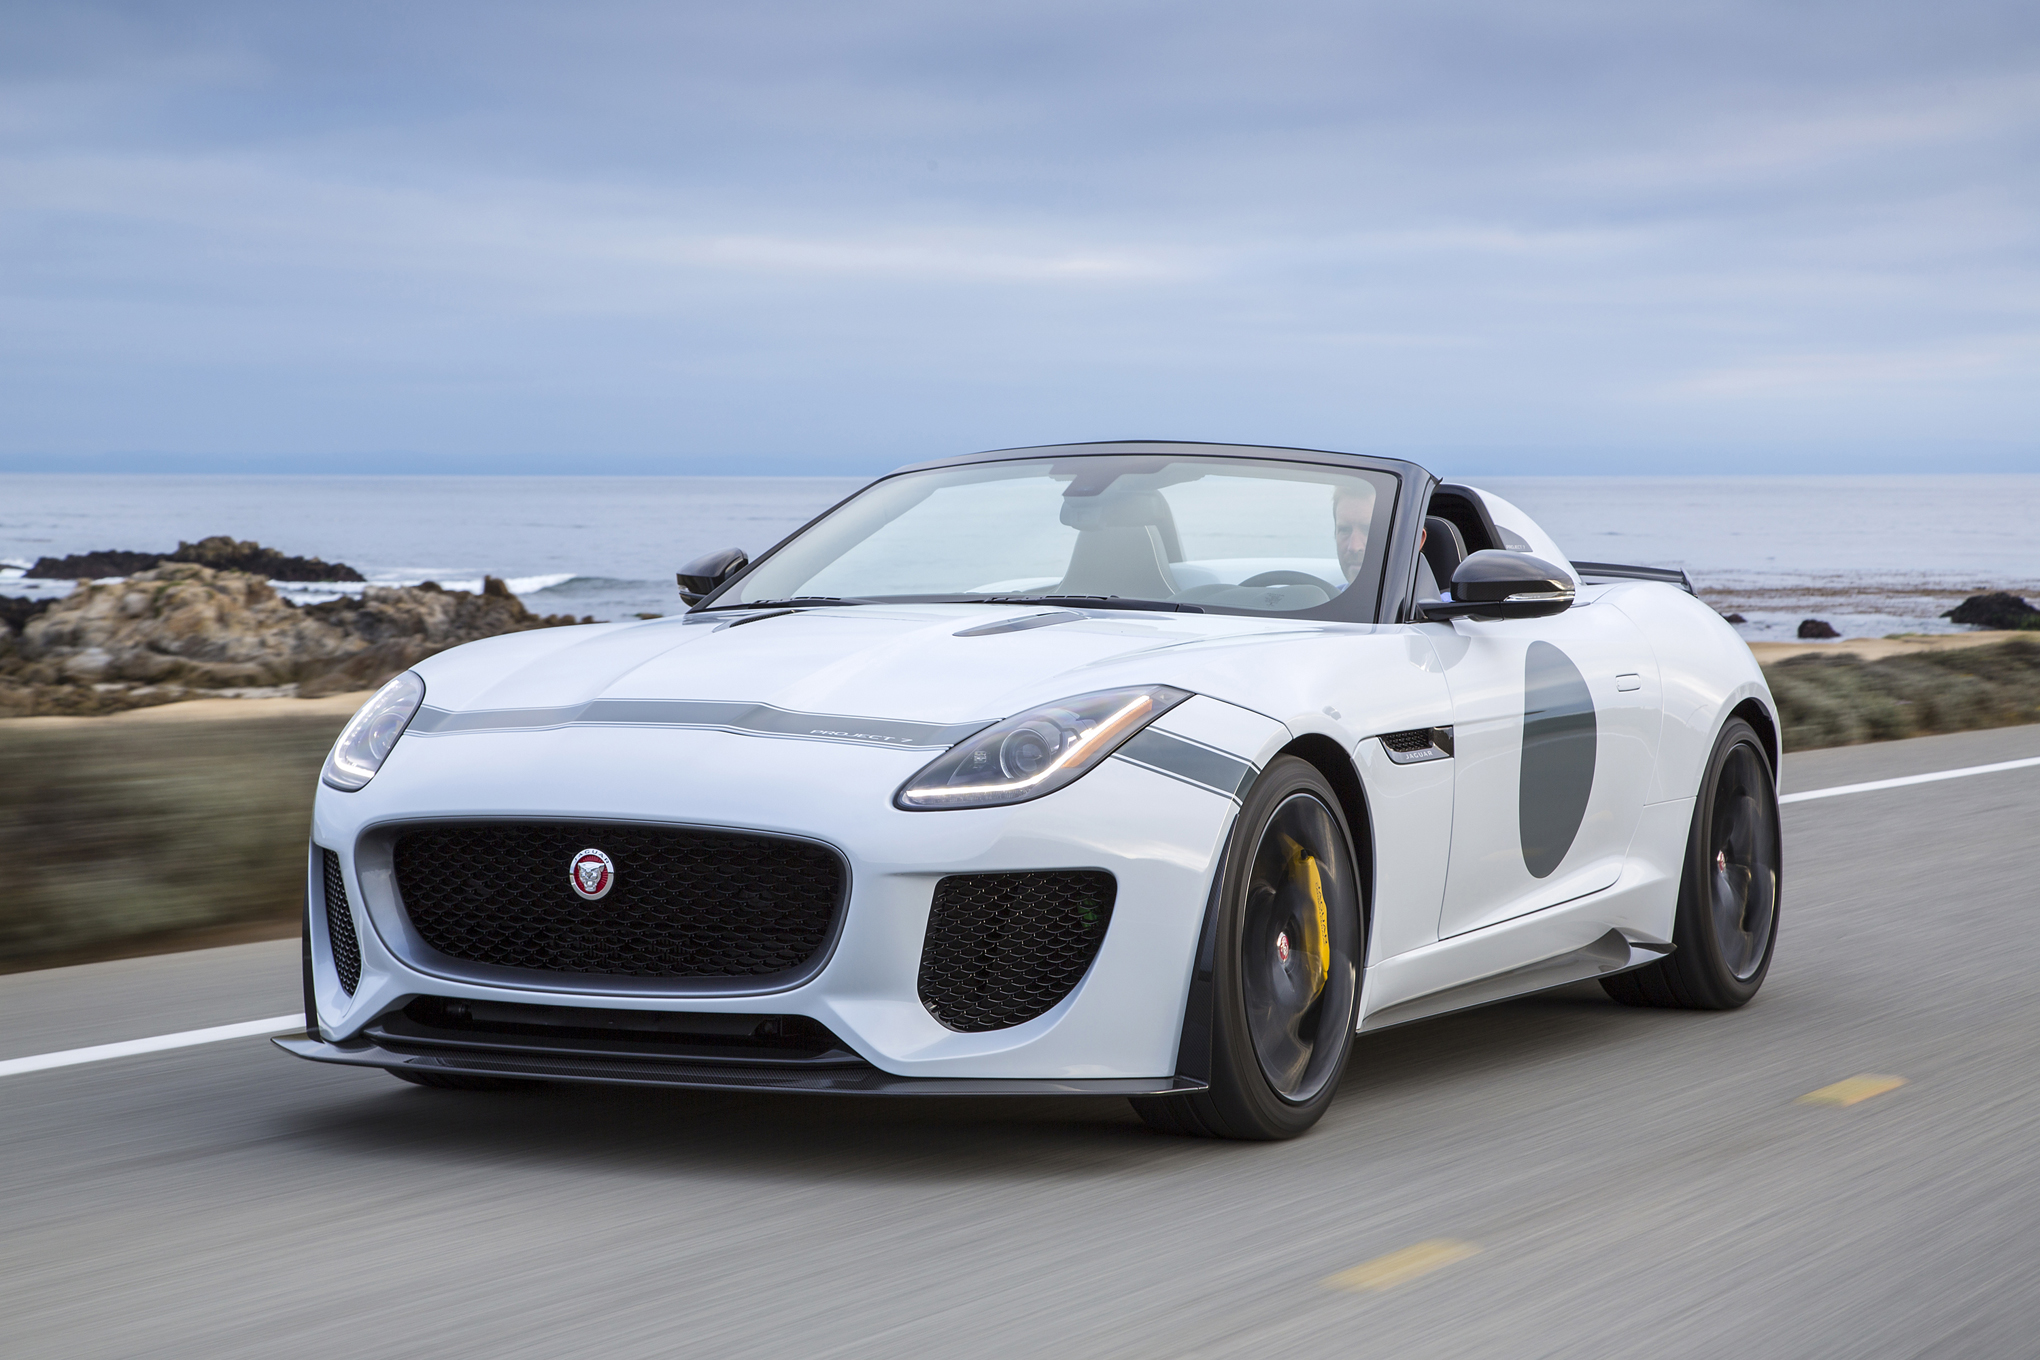 Jaguar F-Type Project 7 Costs $165,925, Coming to U.S. with 575 HP